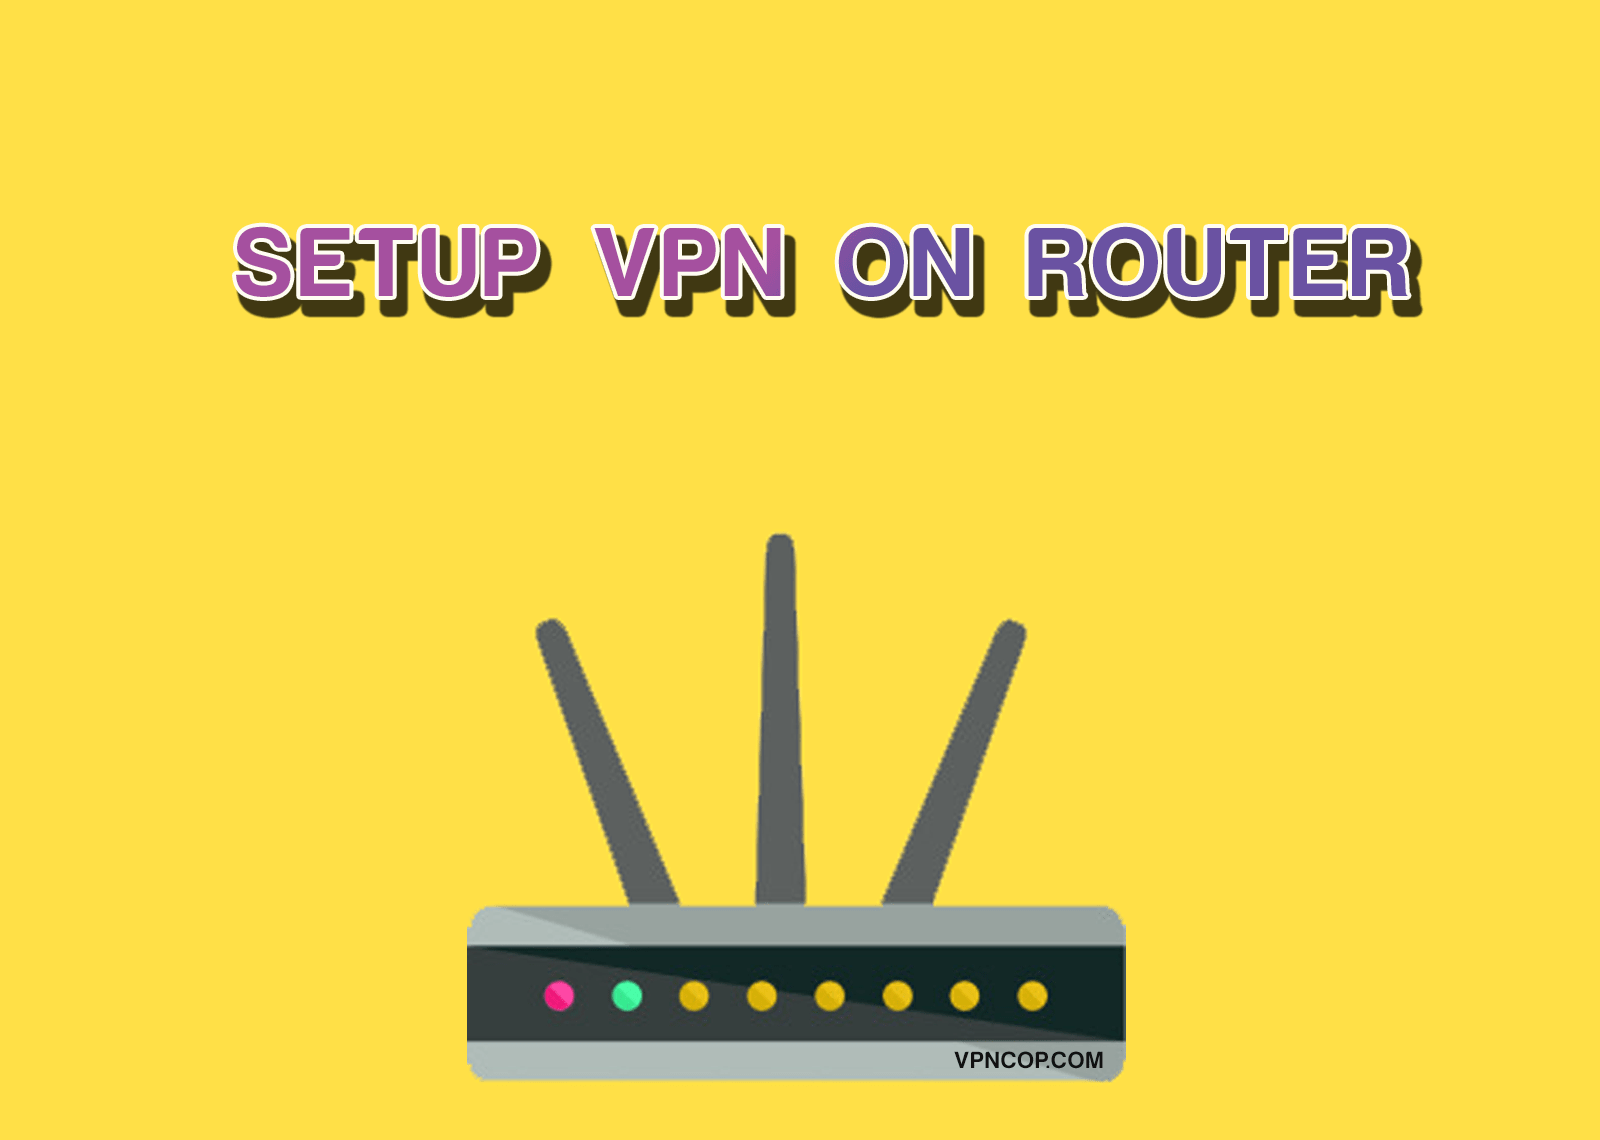 Guide to setup vpn on router